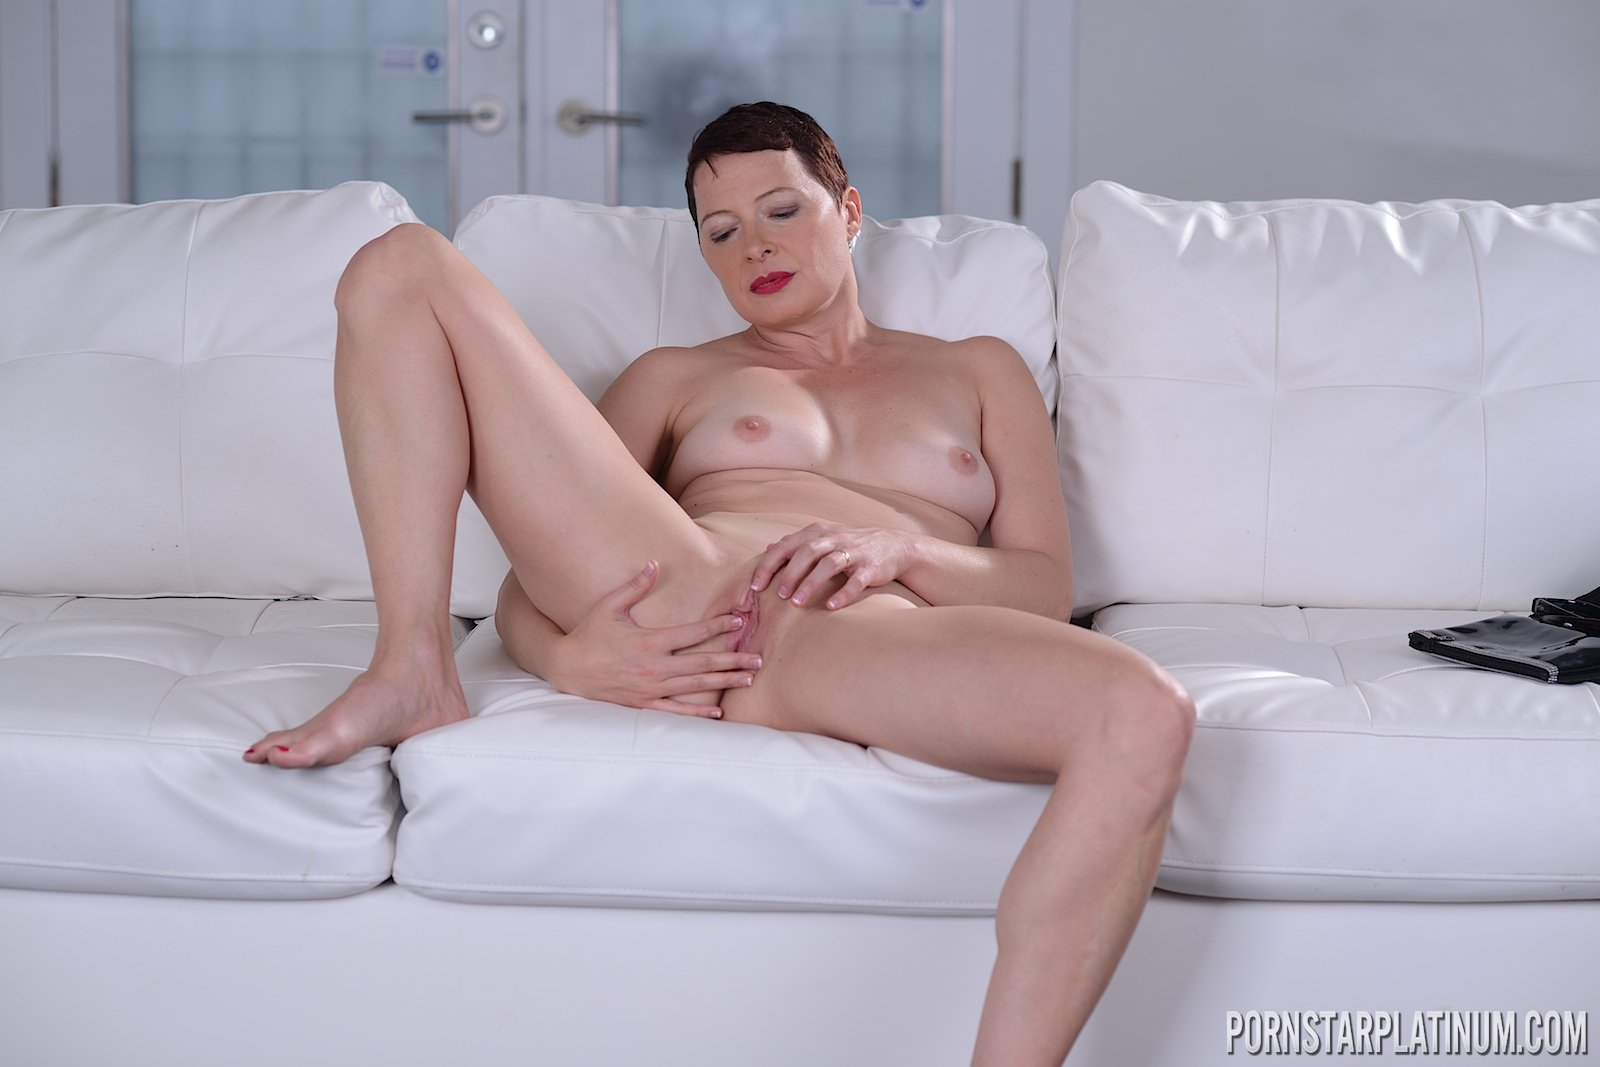 American supermodels in bikinis Hot and busty Asian babe is fucked doggy style